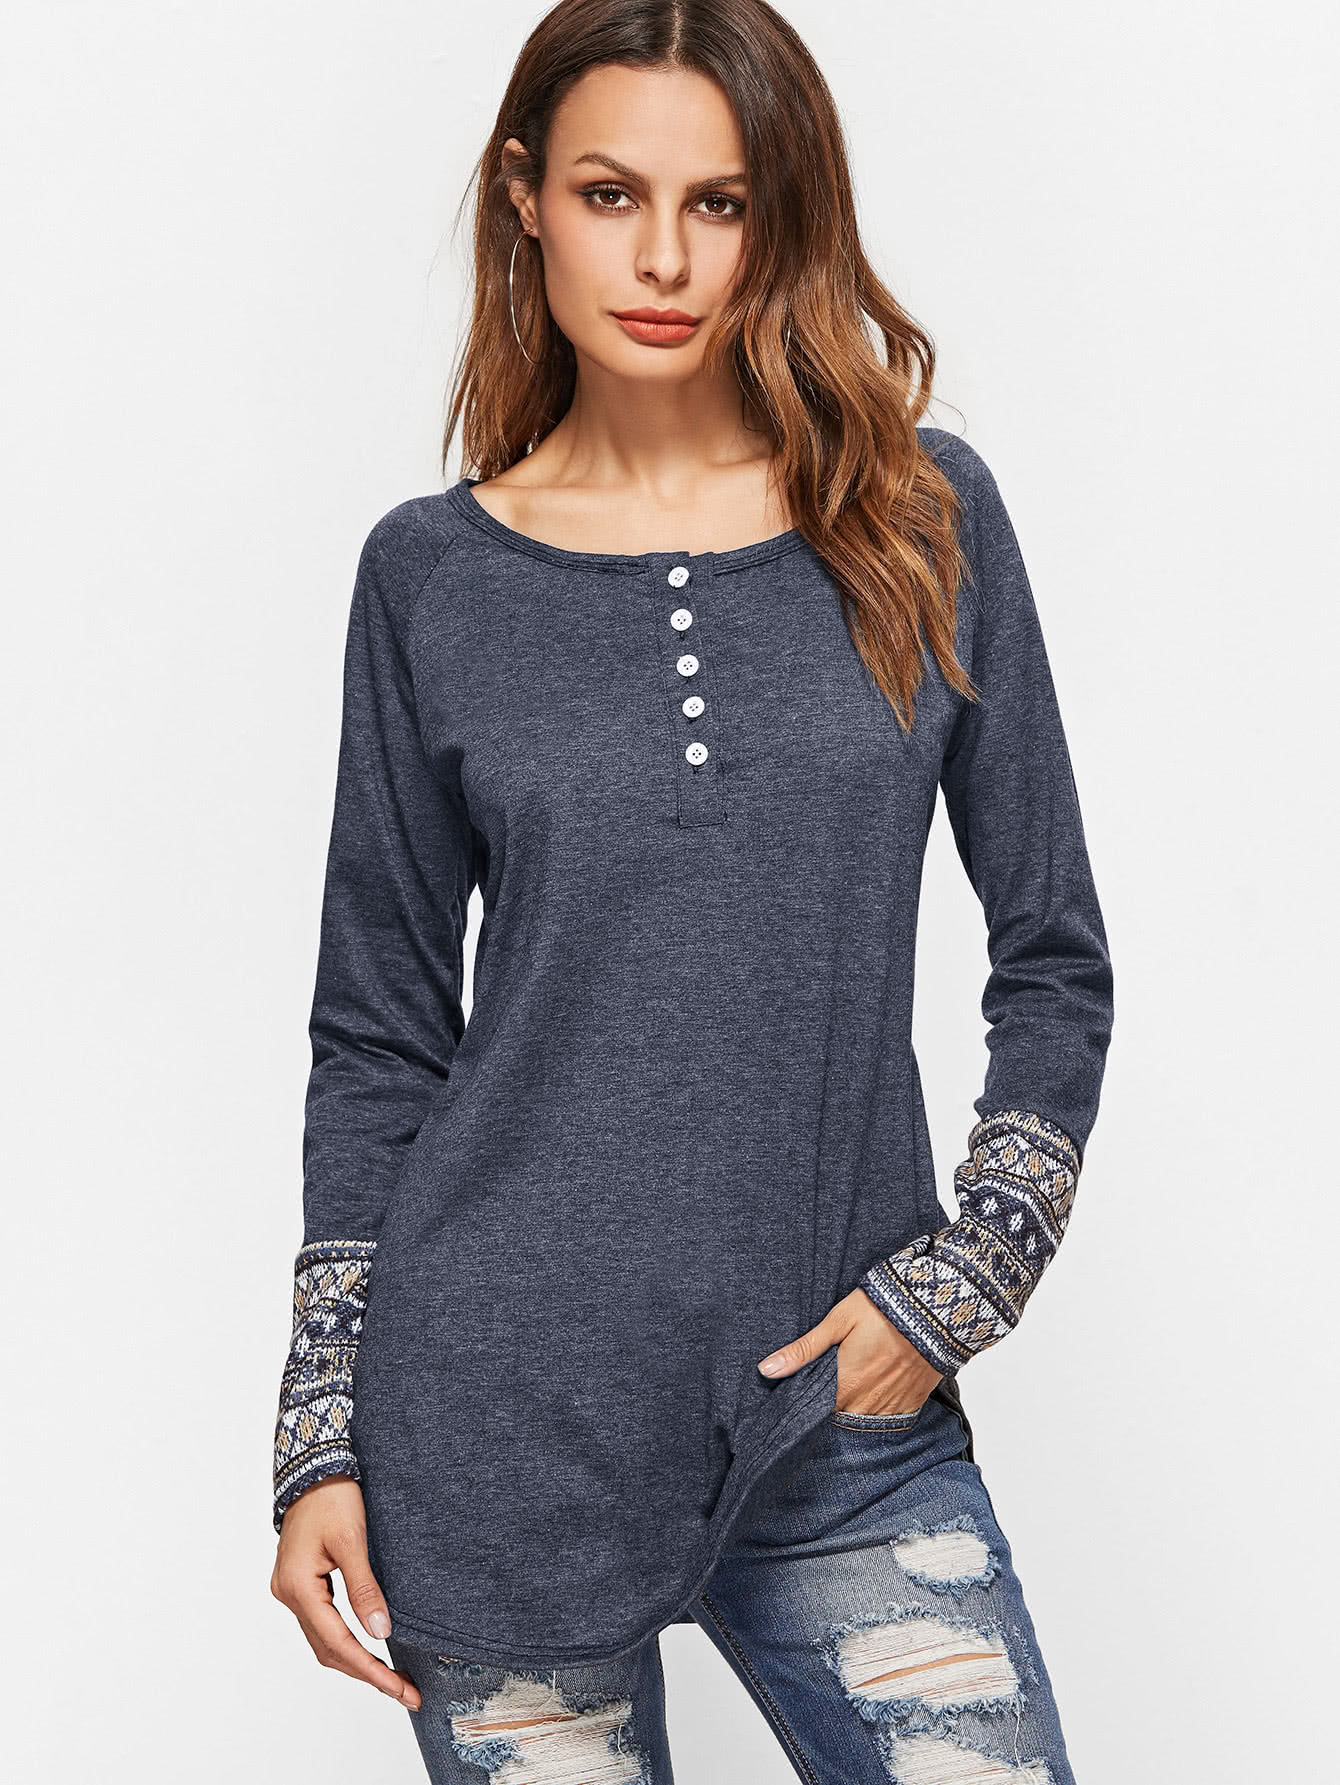 Contrast Tribal Print Cuff Button Front T-shirt